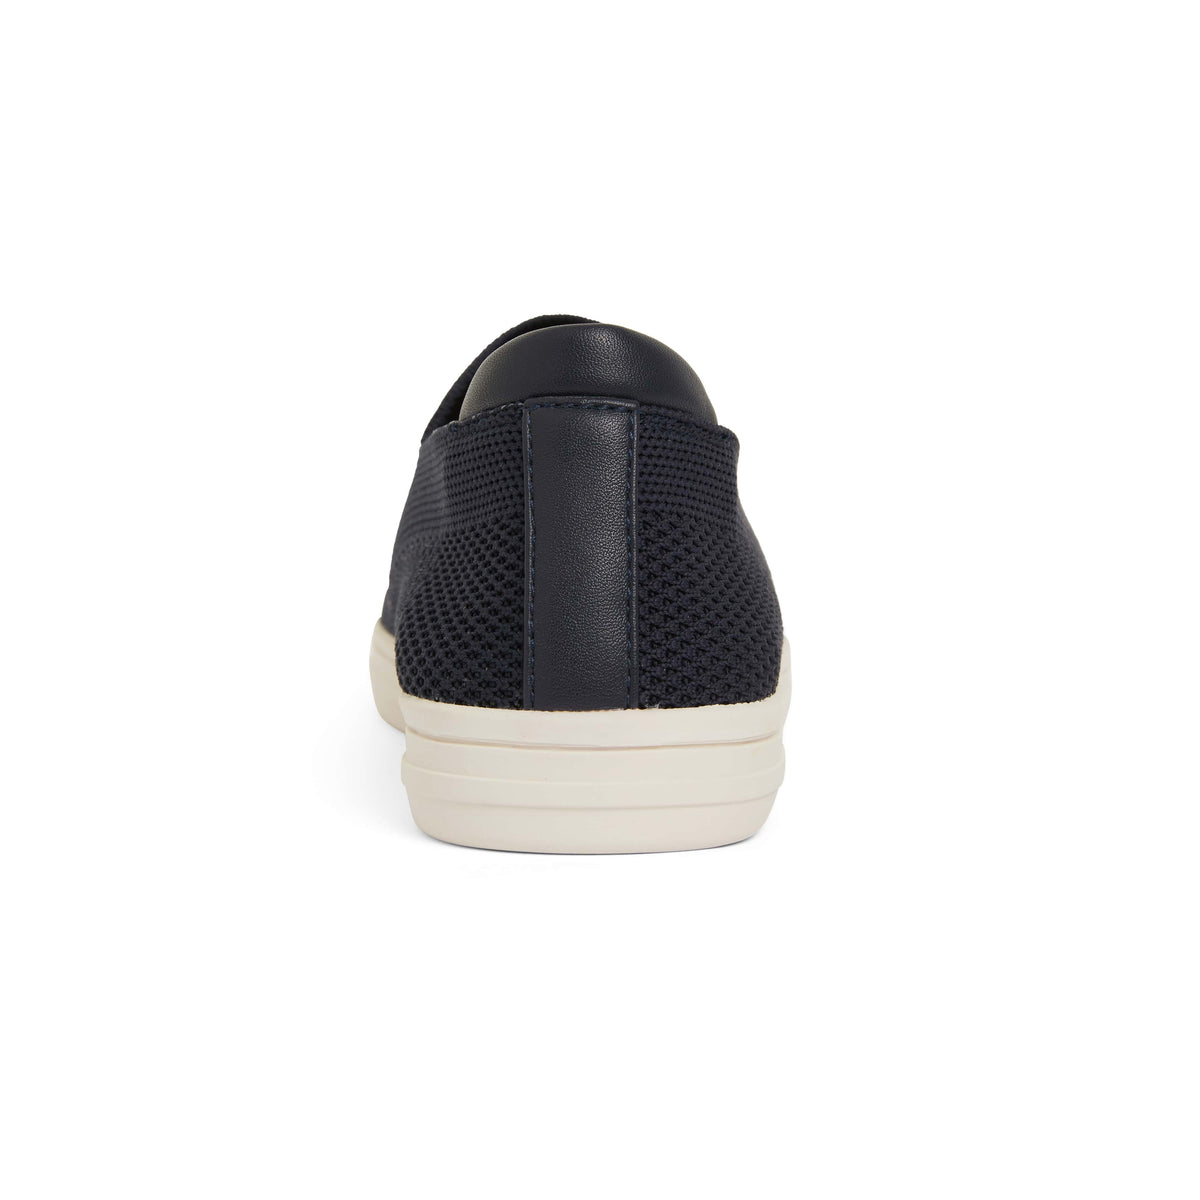 Veneto Sneaker in Navy Fabric